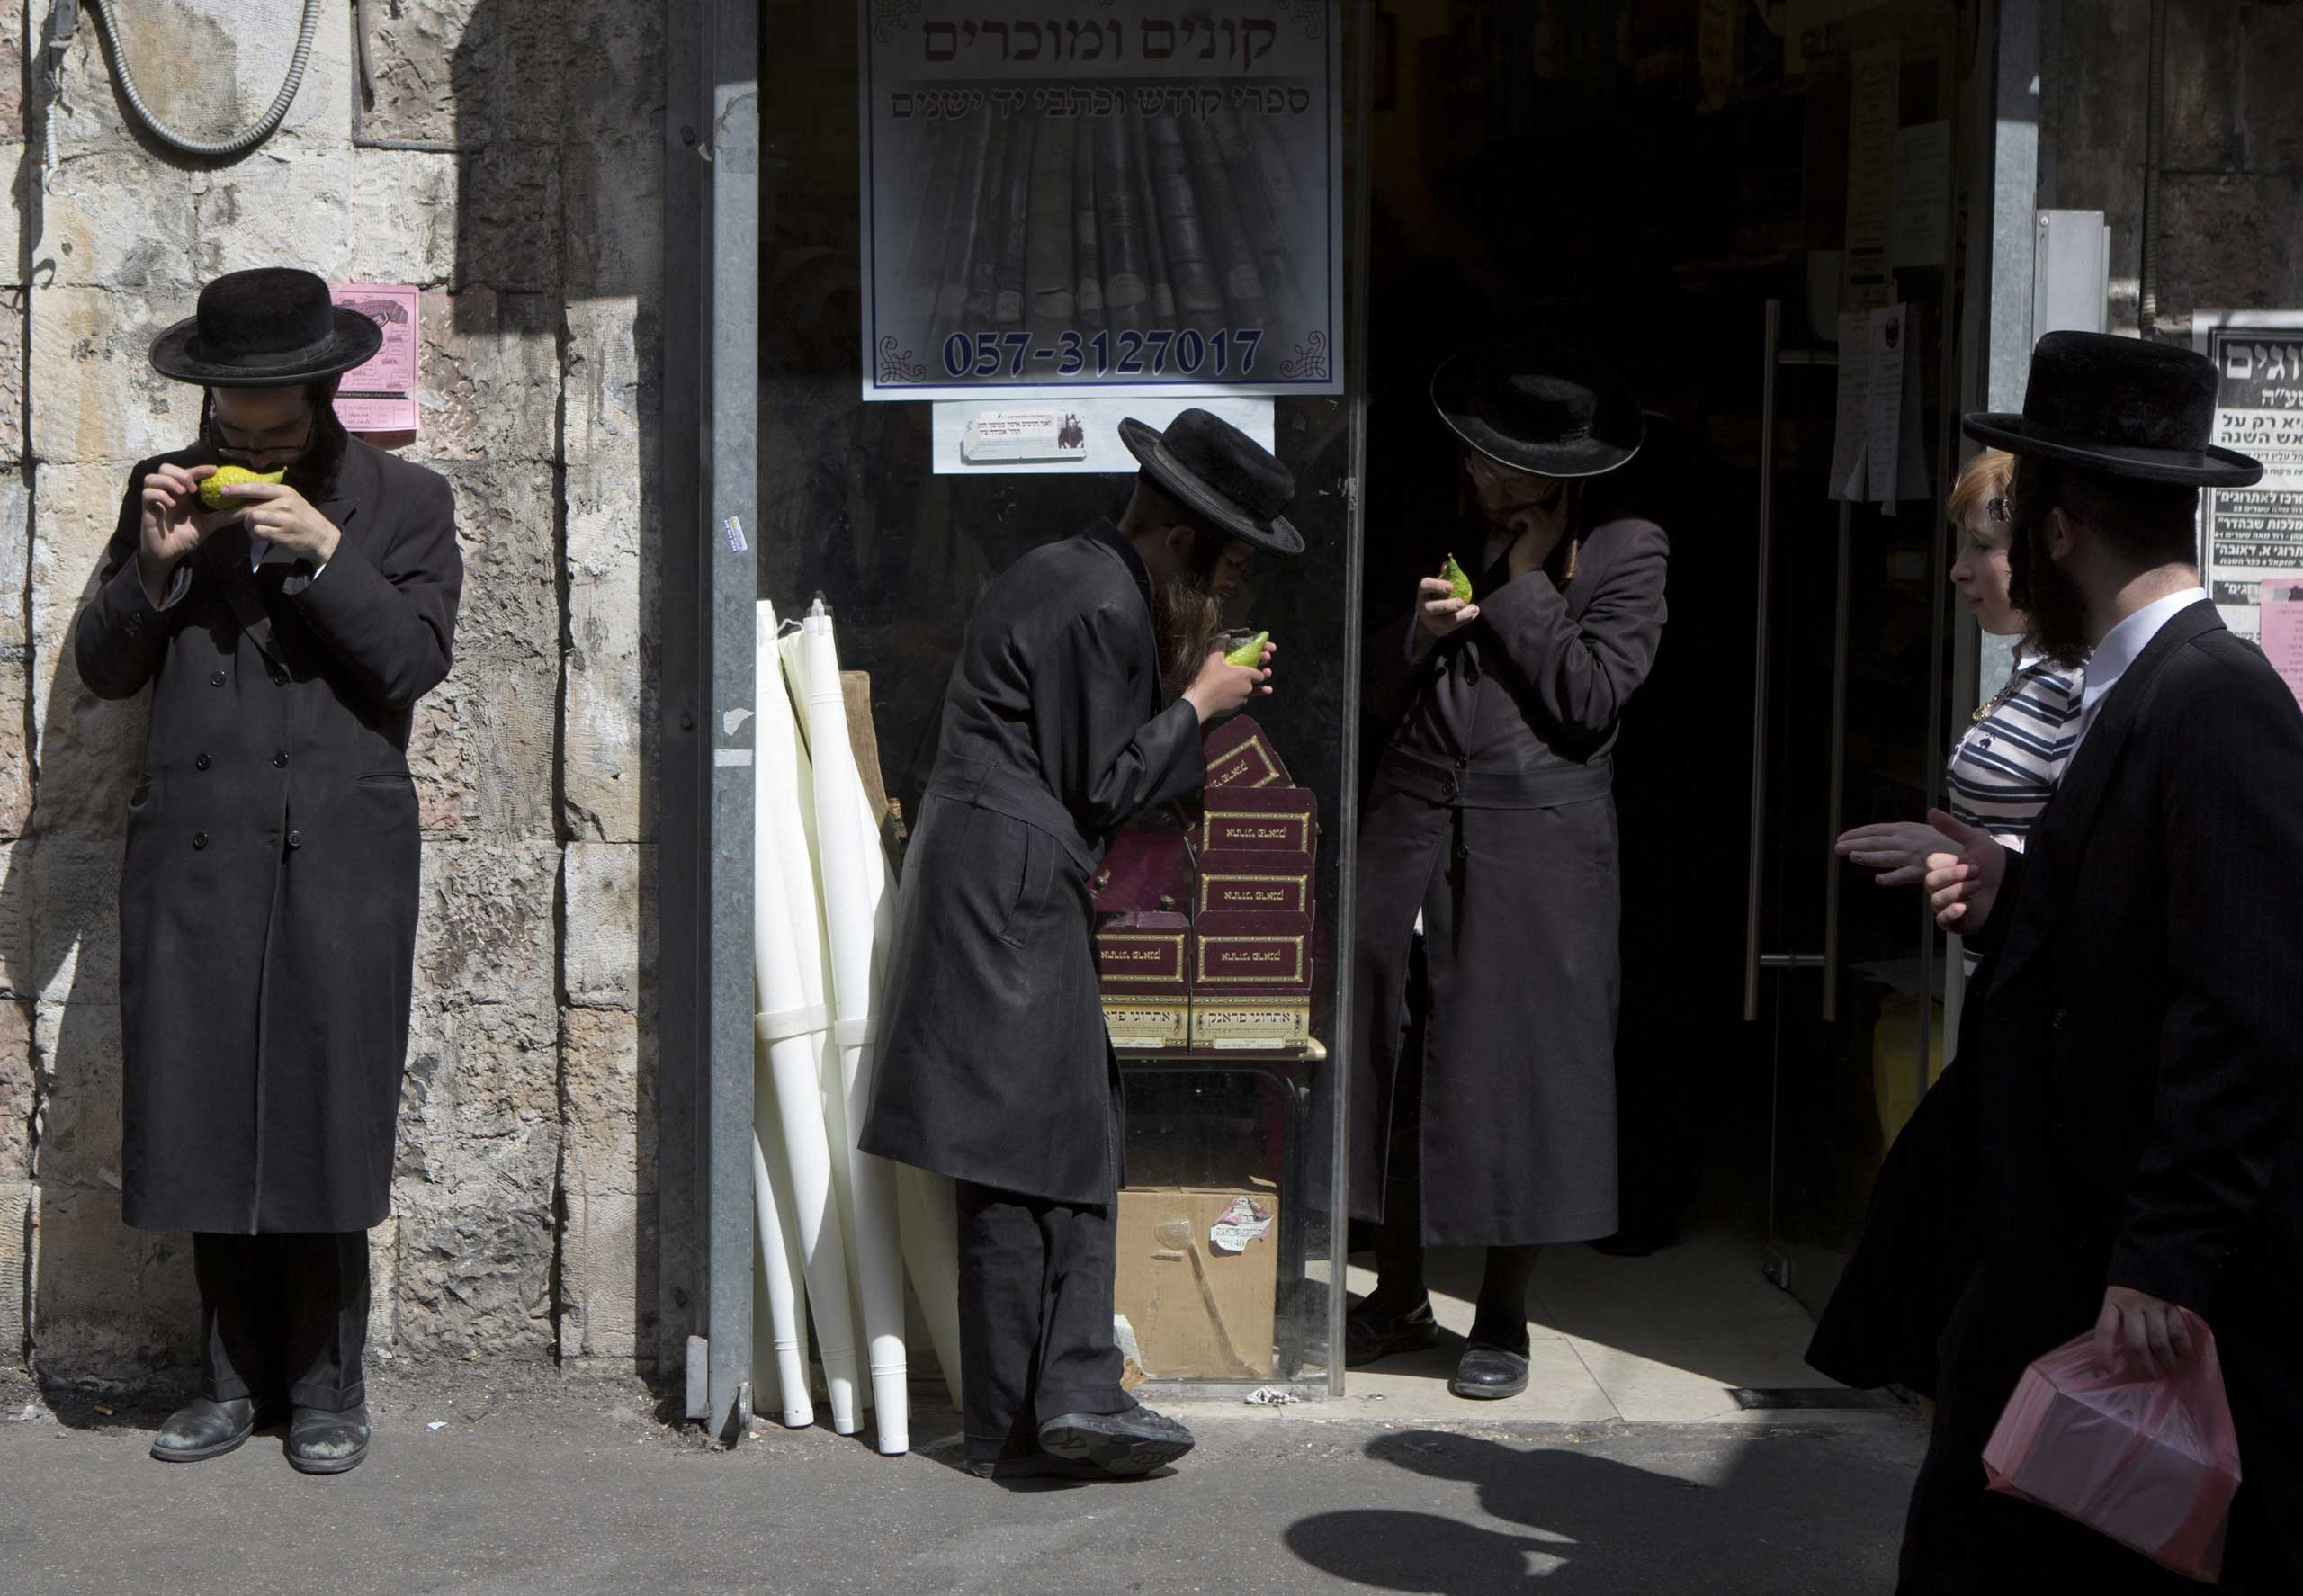 Oct. 7, 2014. Ultra-Orthodox Jews inspect etrogs, or citrons, outside a shop in the Mea Shearim neighbourhood in Jerusalem as they look to purchase an unblemished fruit ahead of the holiday of Sukkot. The etrog is one of the 'four species' used by religious Jews during the week-long Autumn harvest holiday.